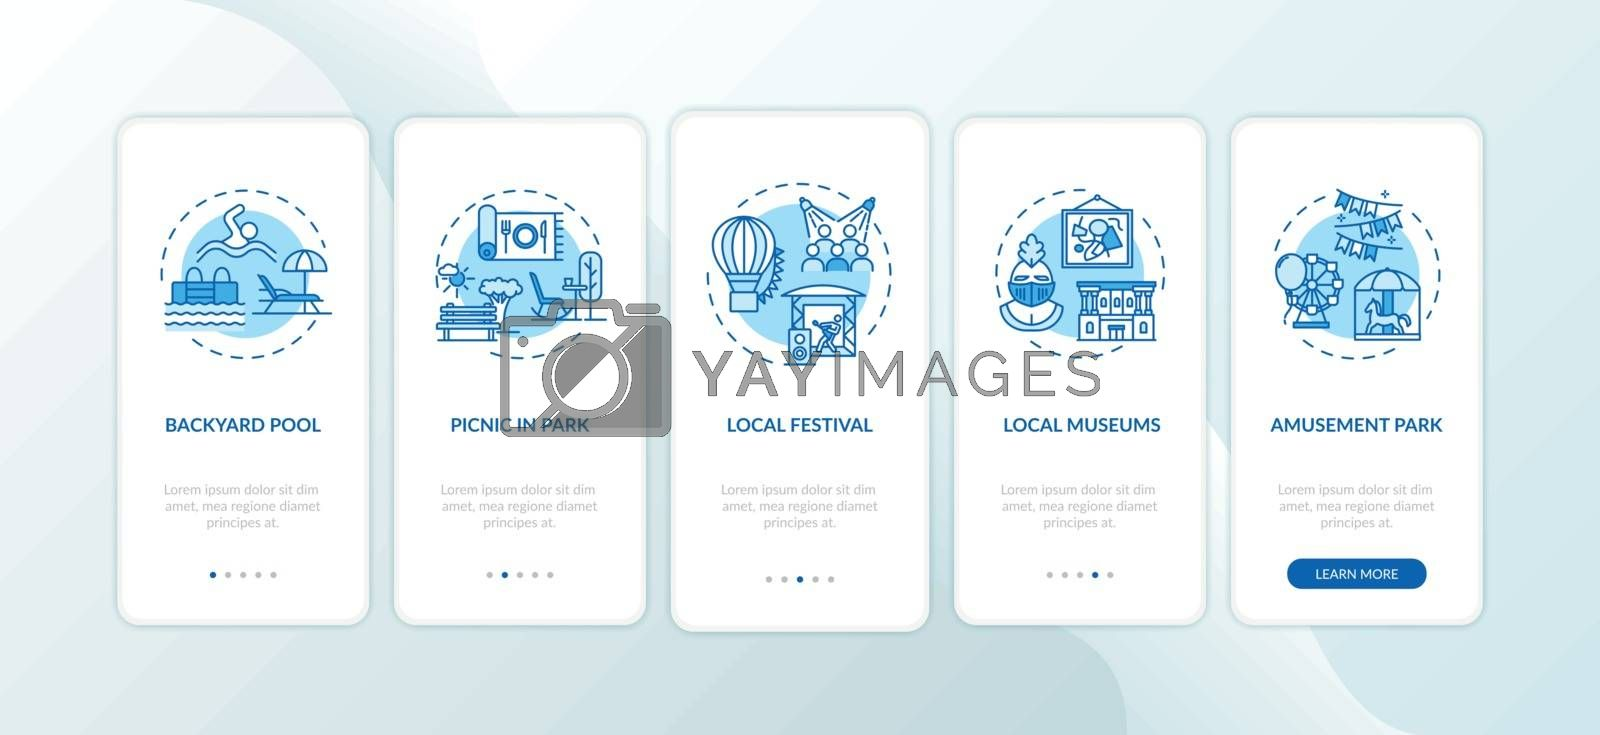 Holistay ideas onboarding mobile app page screen with concepts. Backyard pool. Amusement park. Walkthrough 5 steps graphic instructions. UI vector template with RGB color illustrations